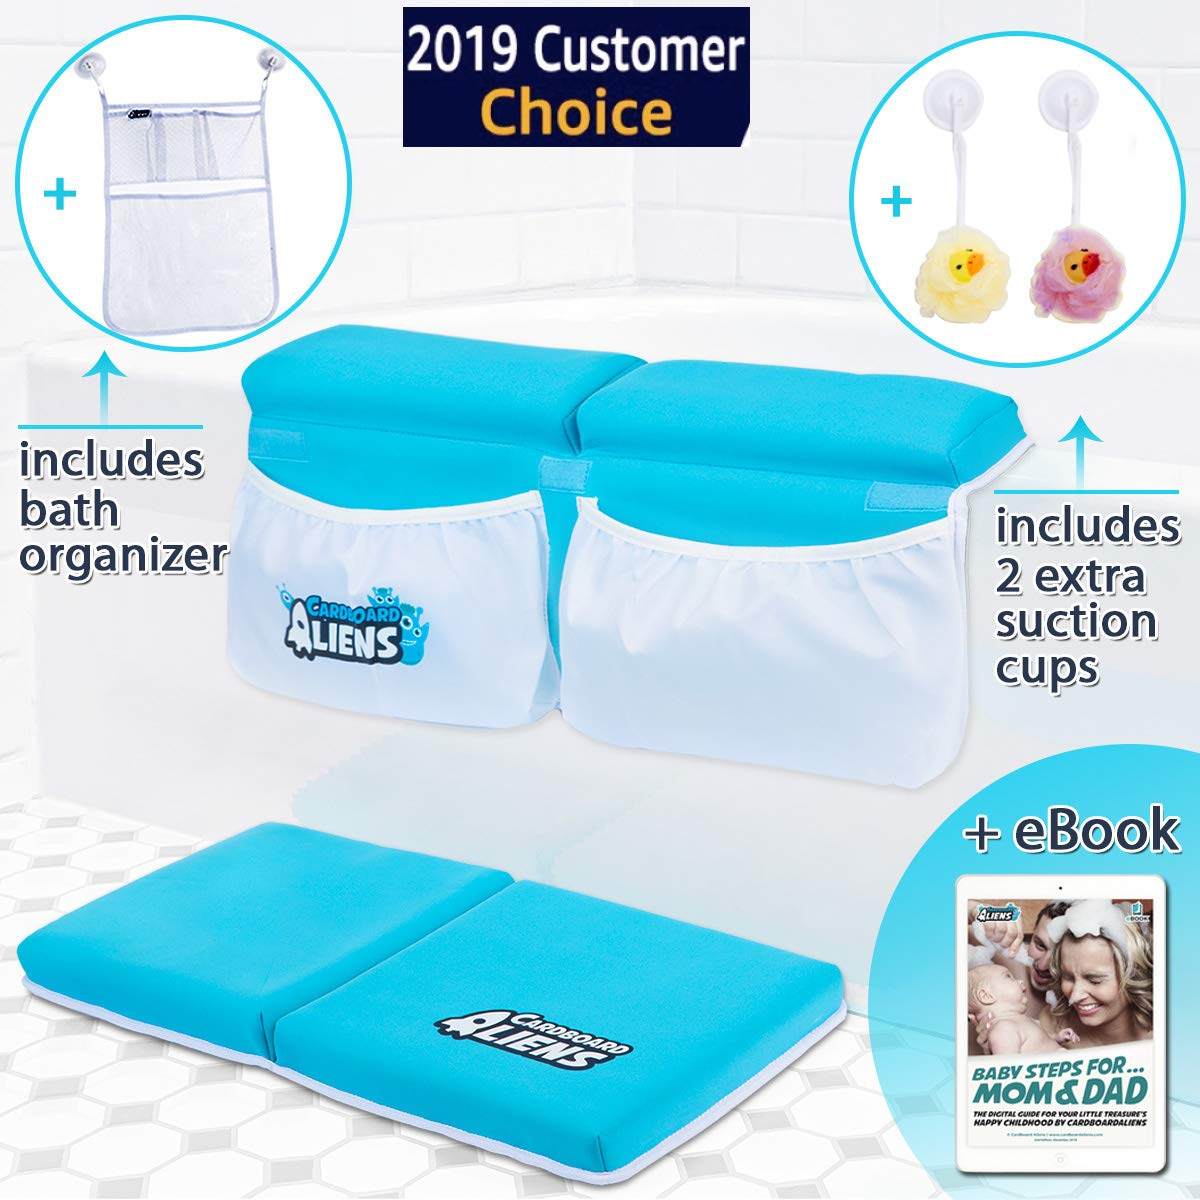 Bath Kneeler and Elbow Rest Thick Pad + Bath Toy Organizer + 2 Extra Suction Cups + eBook with Parenting Tips Set | XL Pockets | Non-Slip Knee Cushion Mat & Arm Support for Baby and Toddler Bath Time